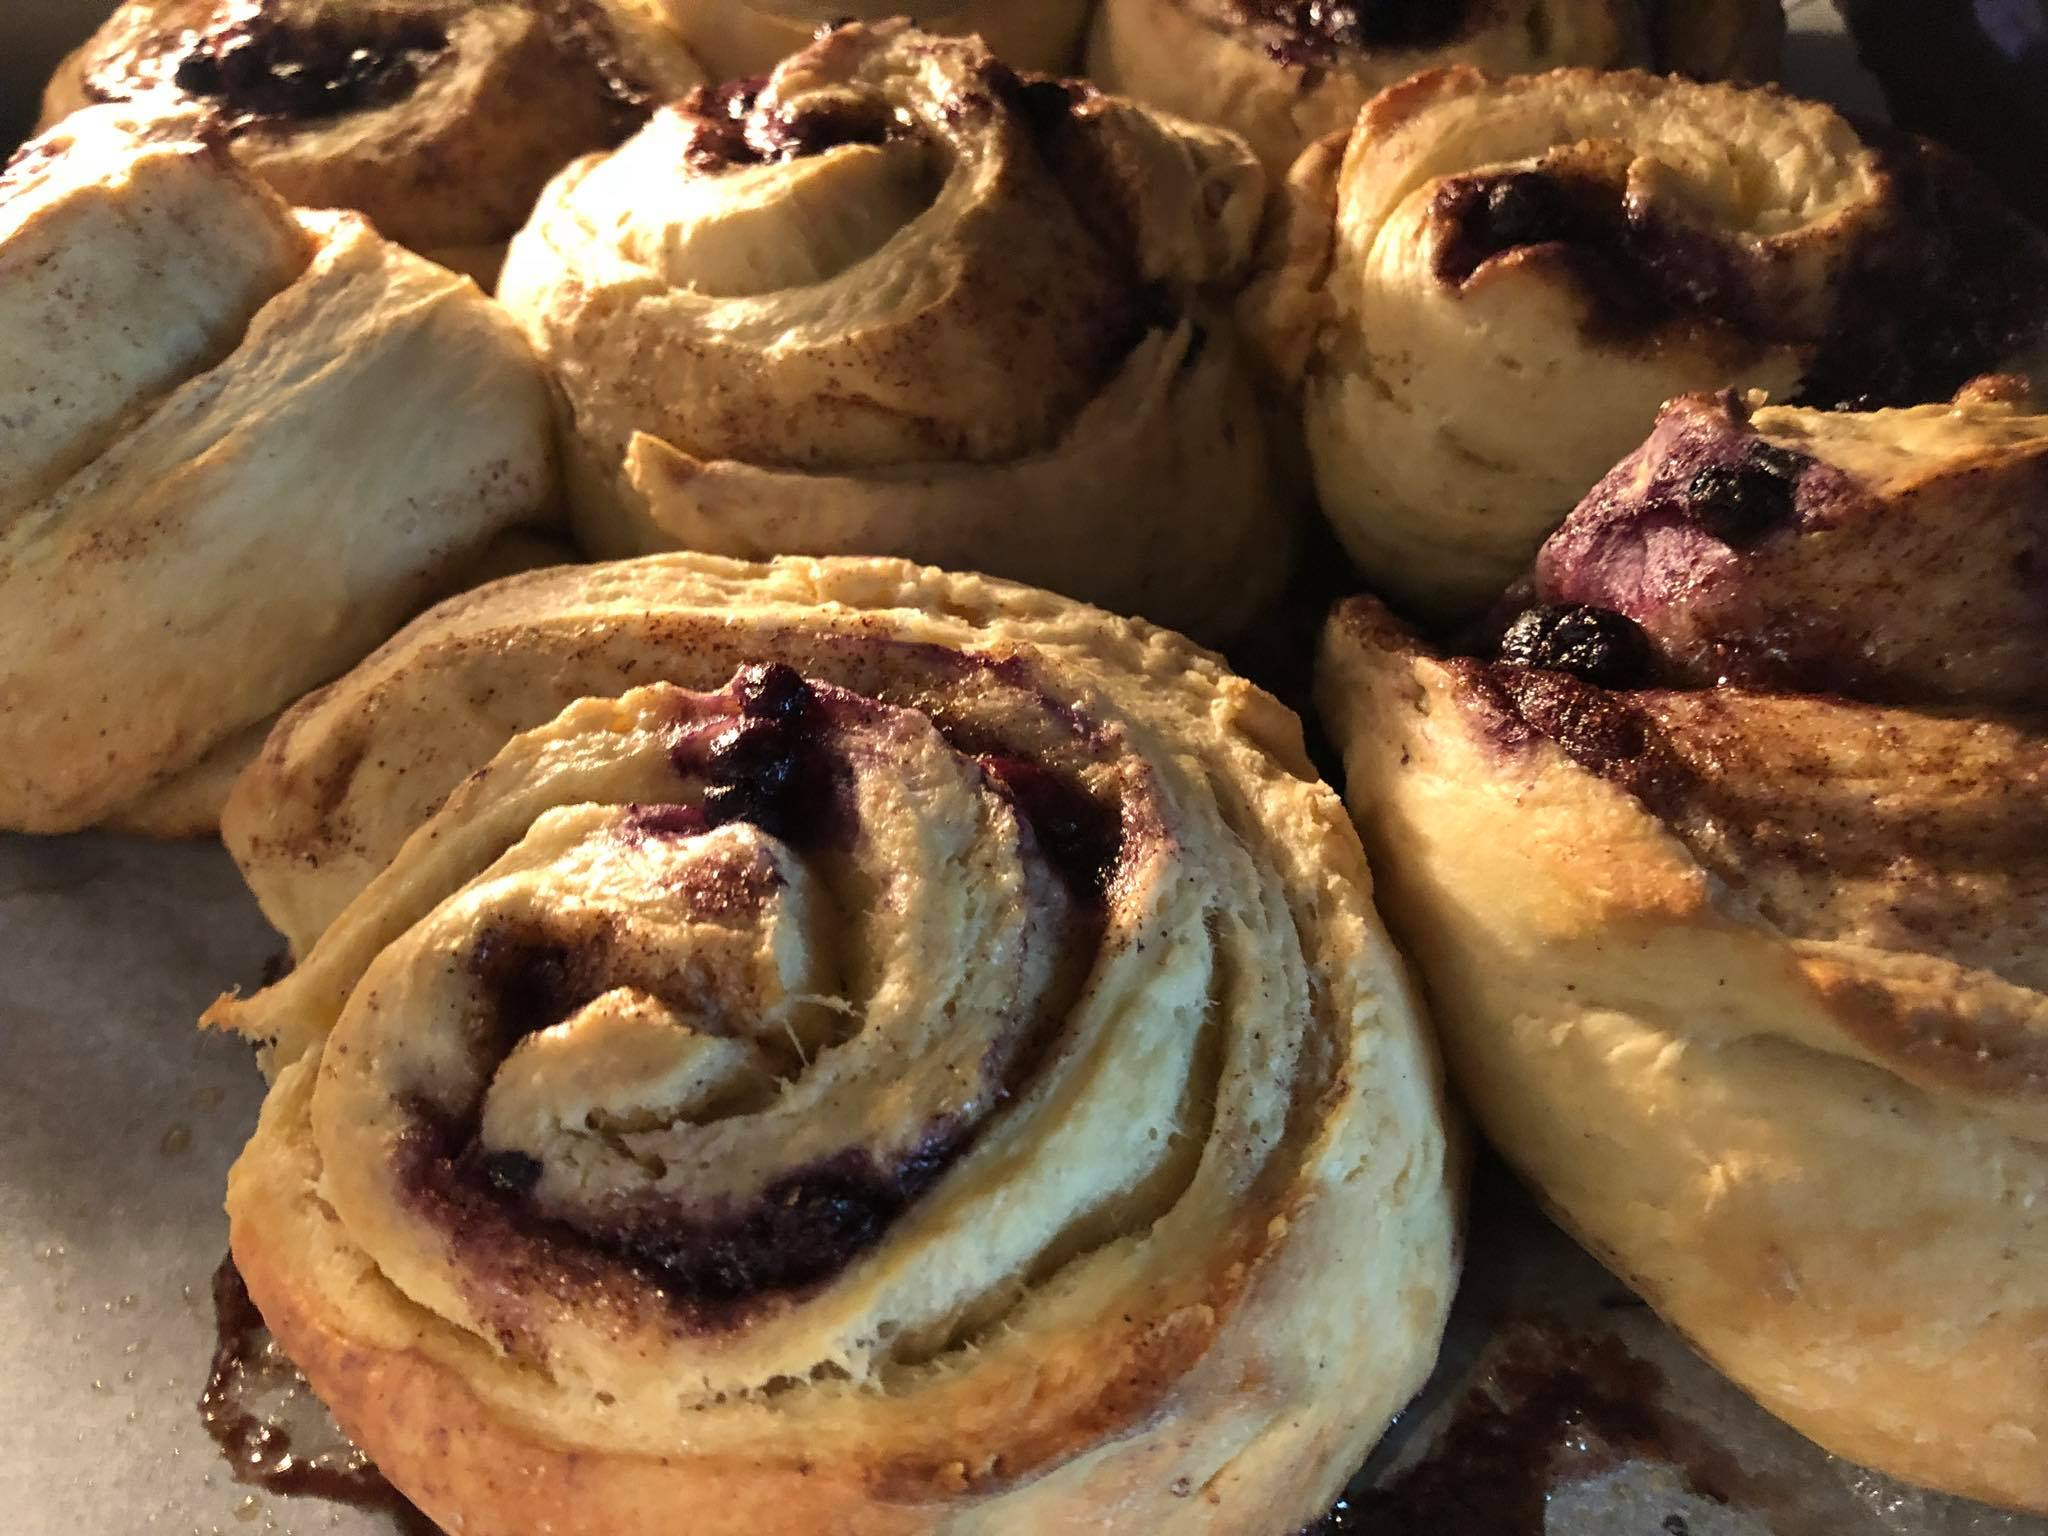 Blueberry cinnamon rolls, a Porch favorite.